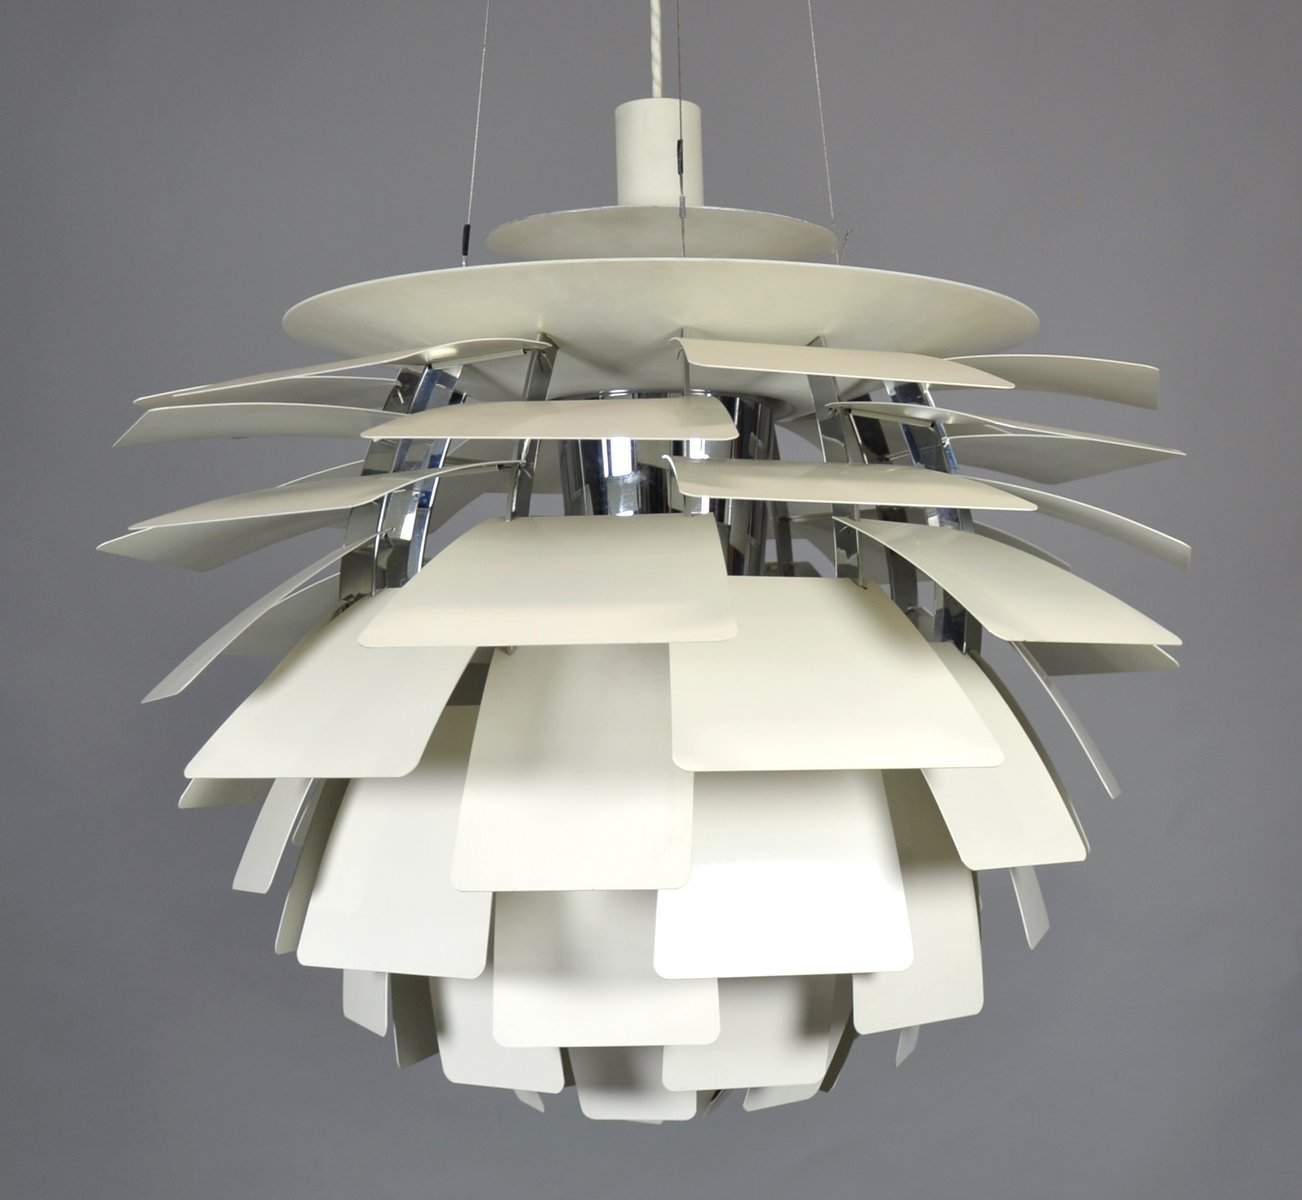 Model ph artichoke ceiling light by poul henningsen for louis model ph artichoke ceiling light by poul henningsen for louis poulsen 1950s aloadofball Image collections